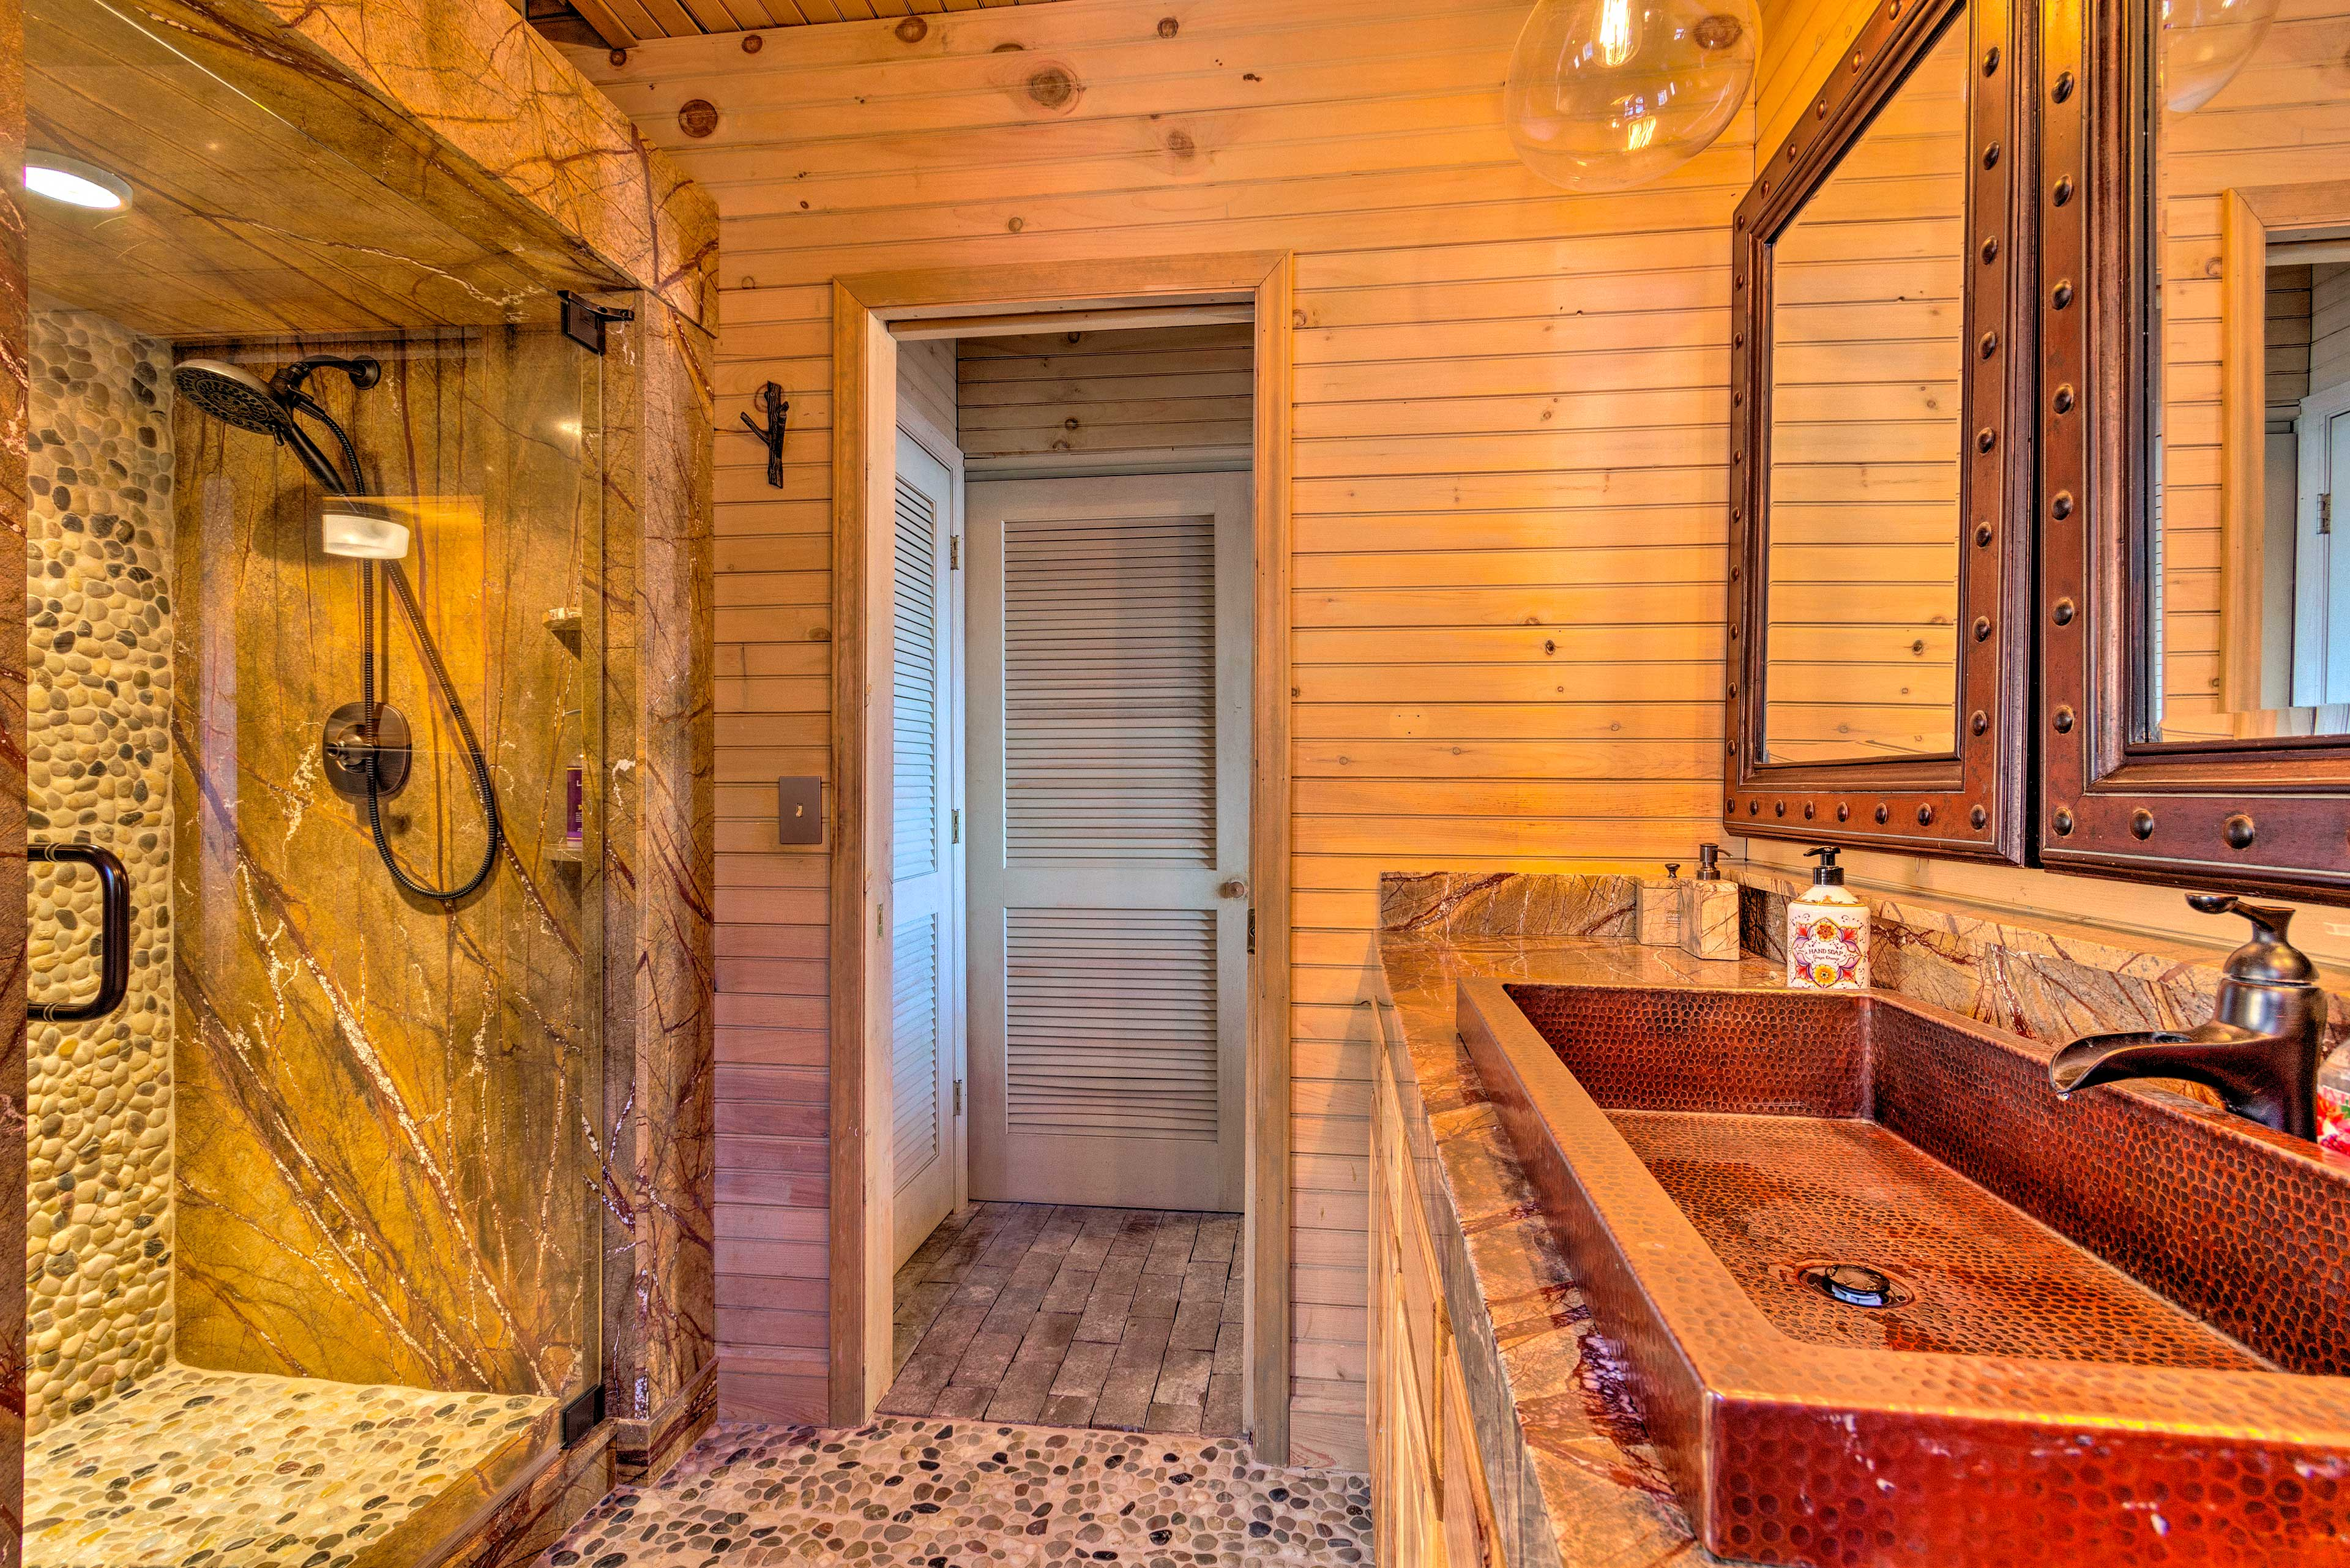 Rinse off in this luxurious river-rock walk-in shower!